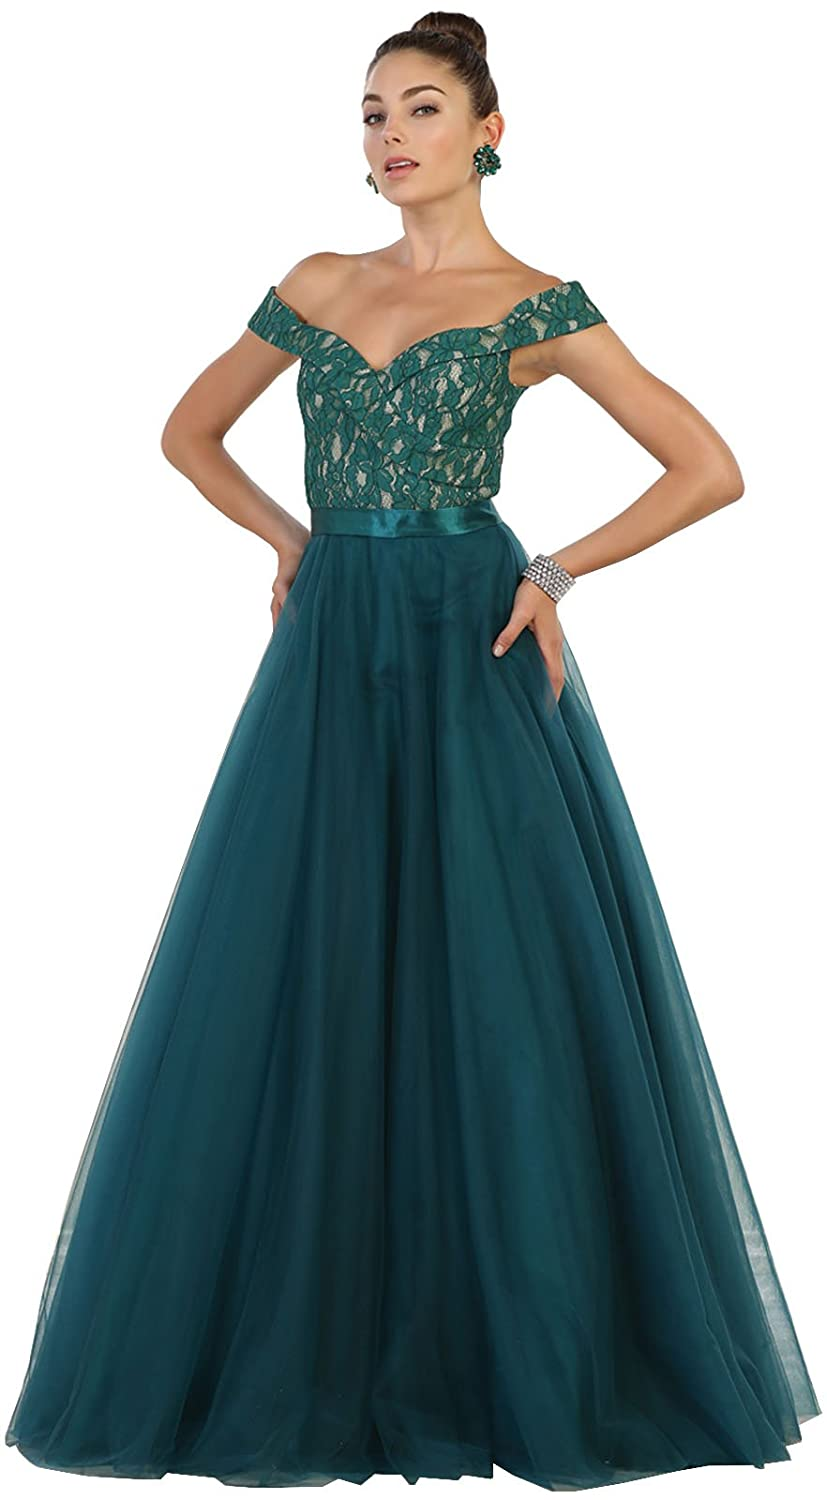 May Queen MQ1533 A-line Prom Dance Designer Dress at Amazon Womens Clothing store: